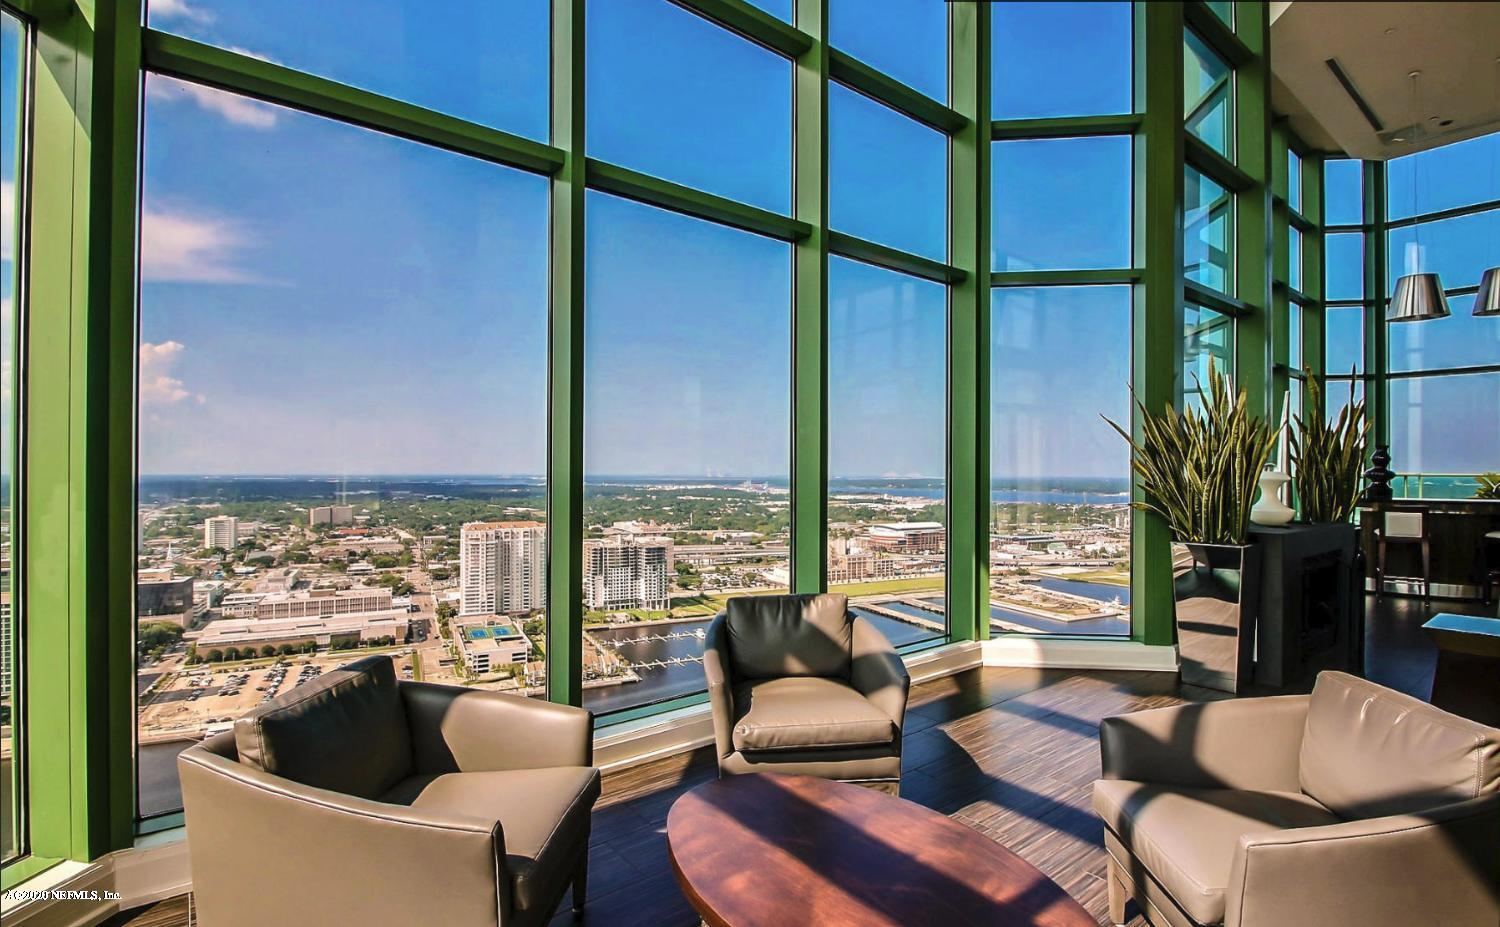 1431 RIVERPLACE, JACKSONVILLE, FLORIDA 32207, 2 Bedrooms Bedrooms, ,2 BathroomsBathrooms,Residential,For sale,RIVERPLACE,1083154